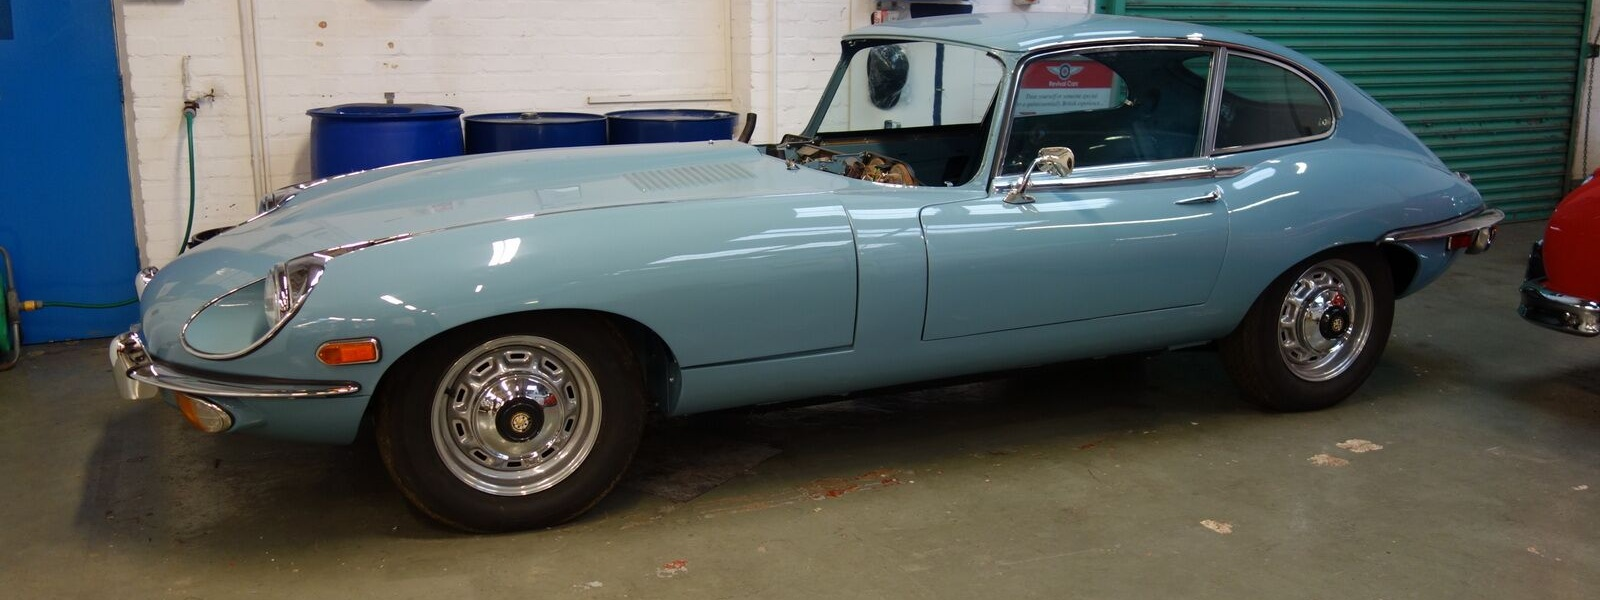 Jaguar E-type Blue (13)_preview